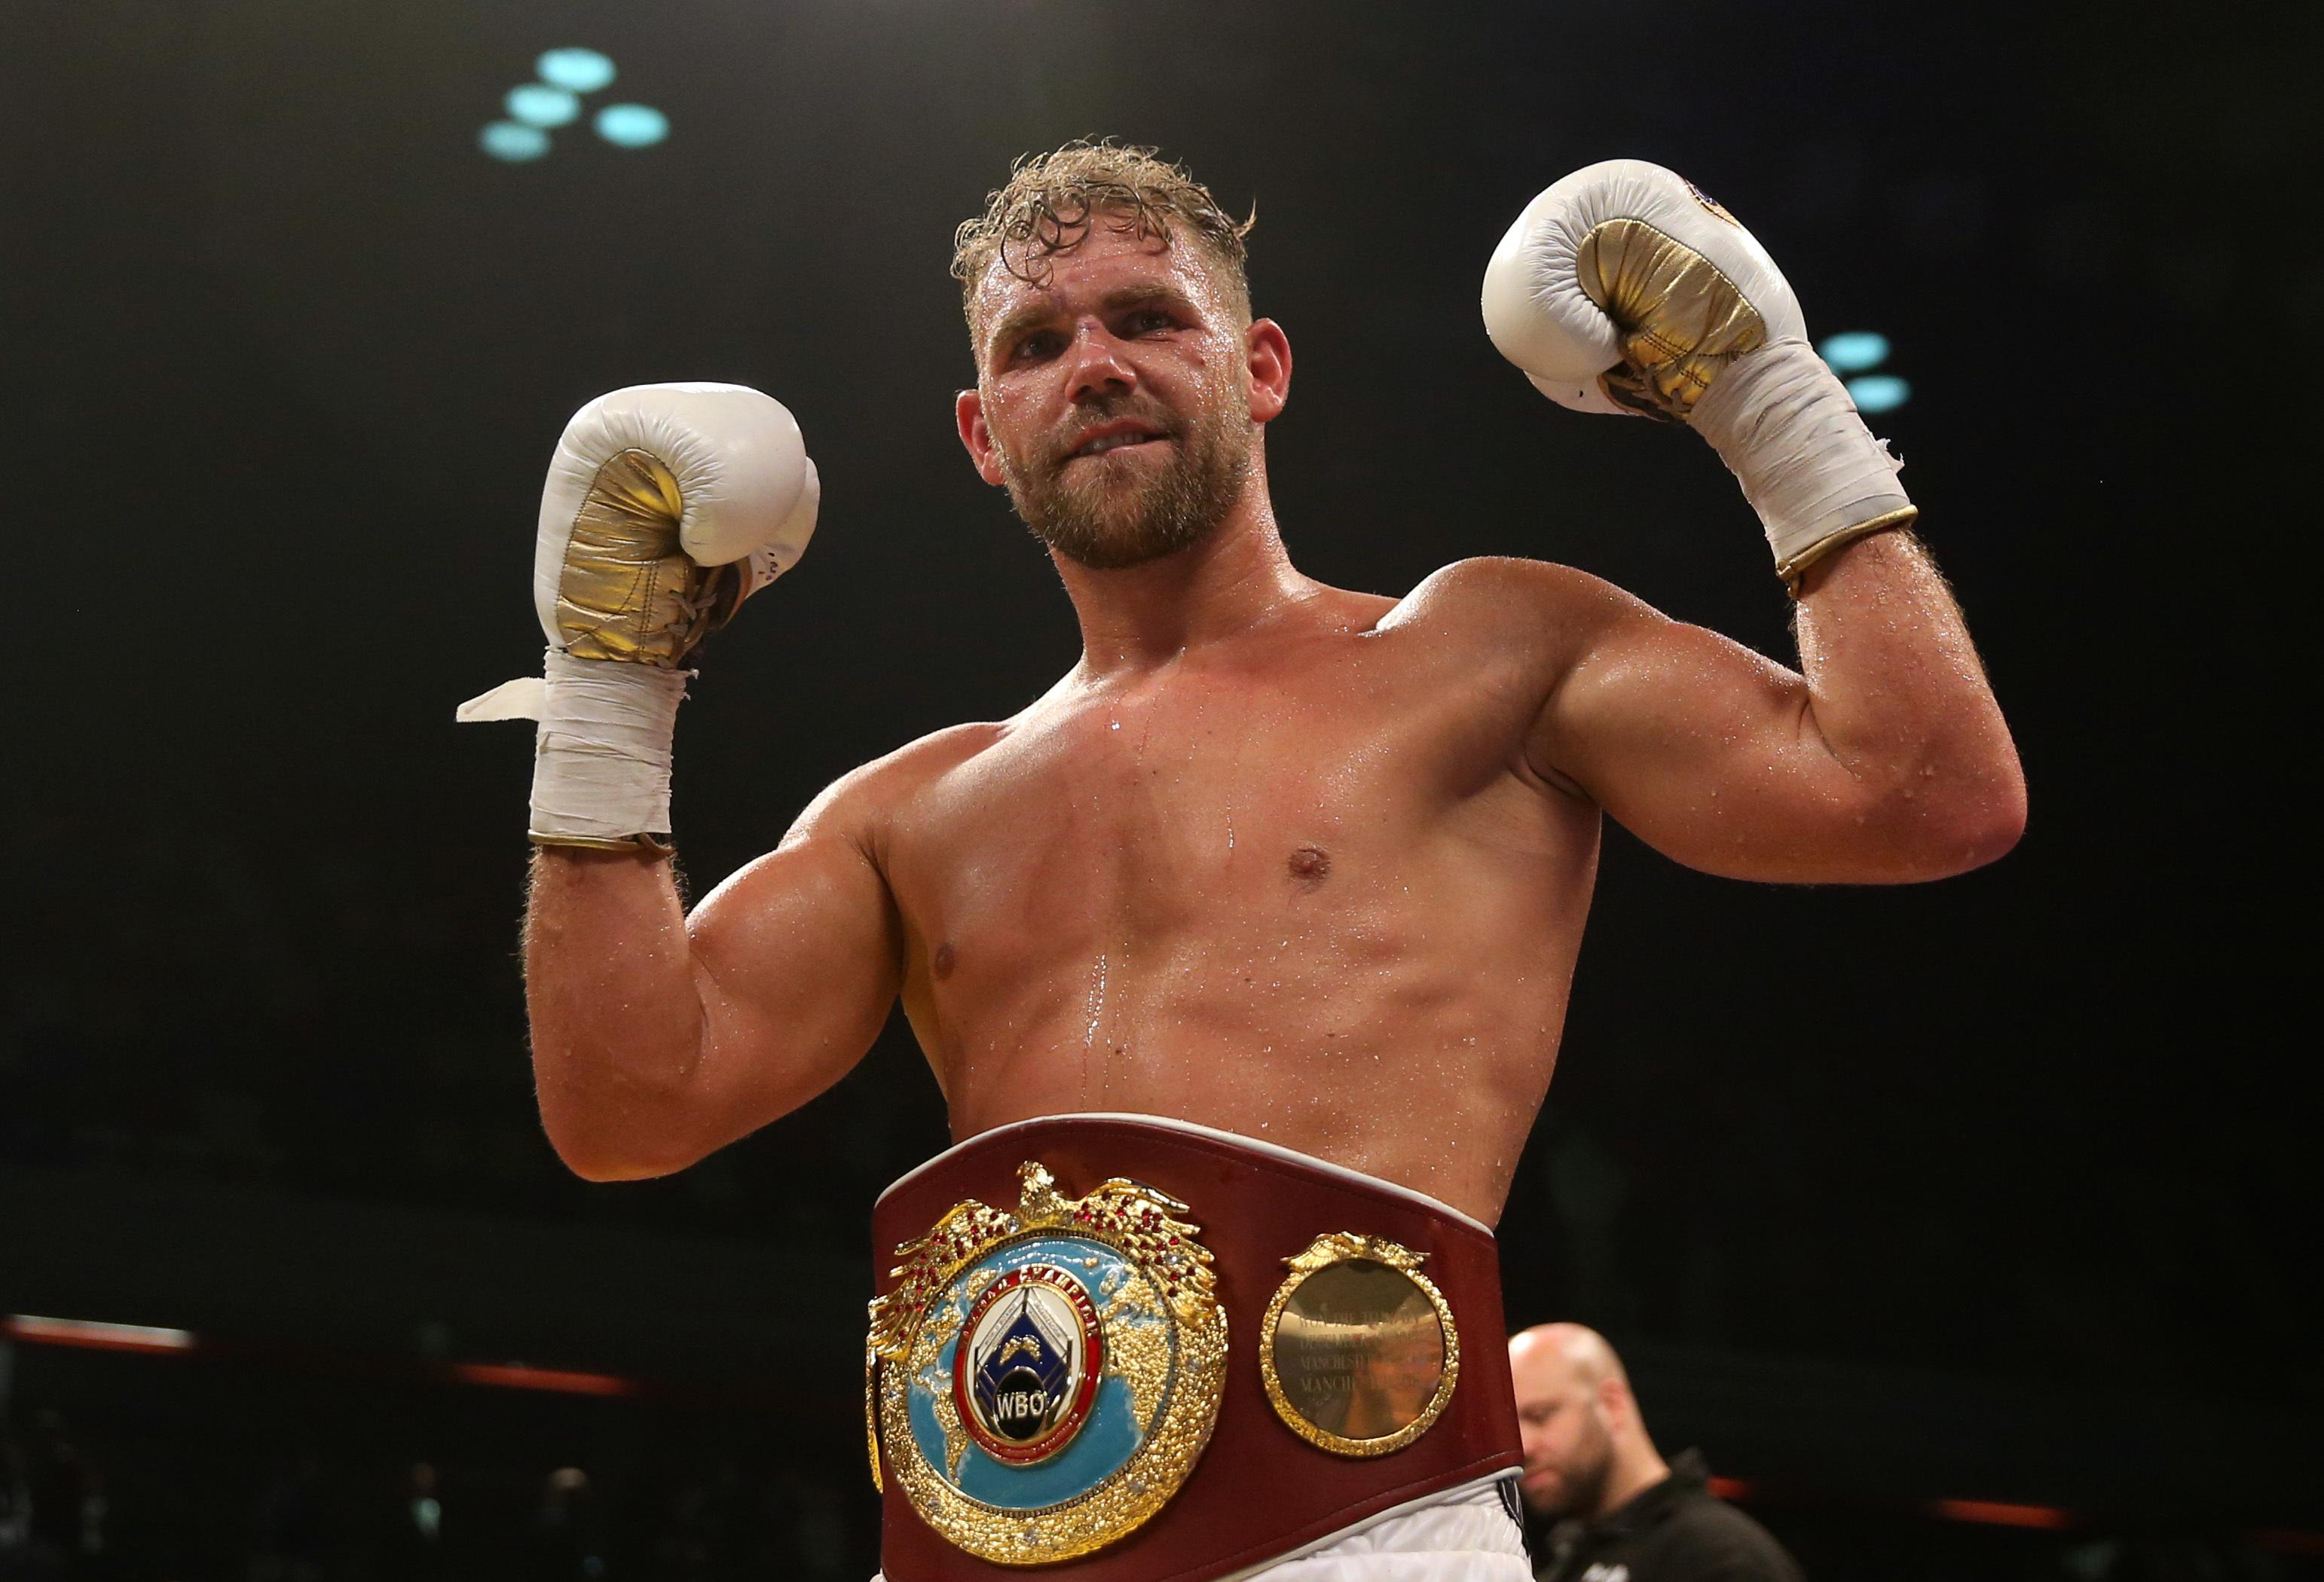 He now looks set to be stripped of his world title and the fight against Demetrius Andrade is under threat